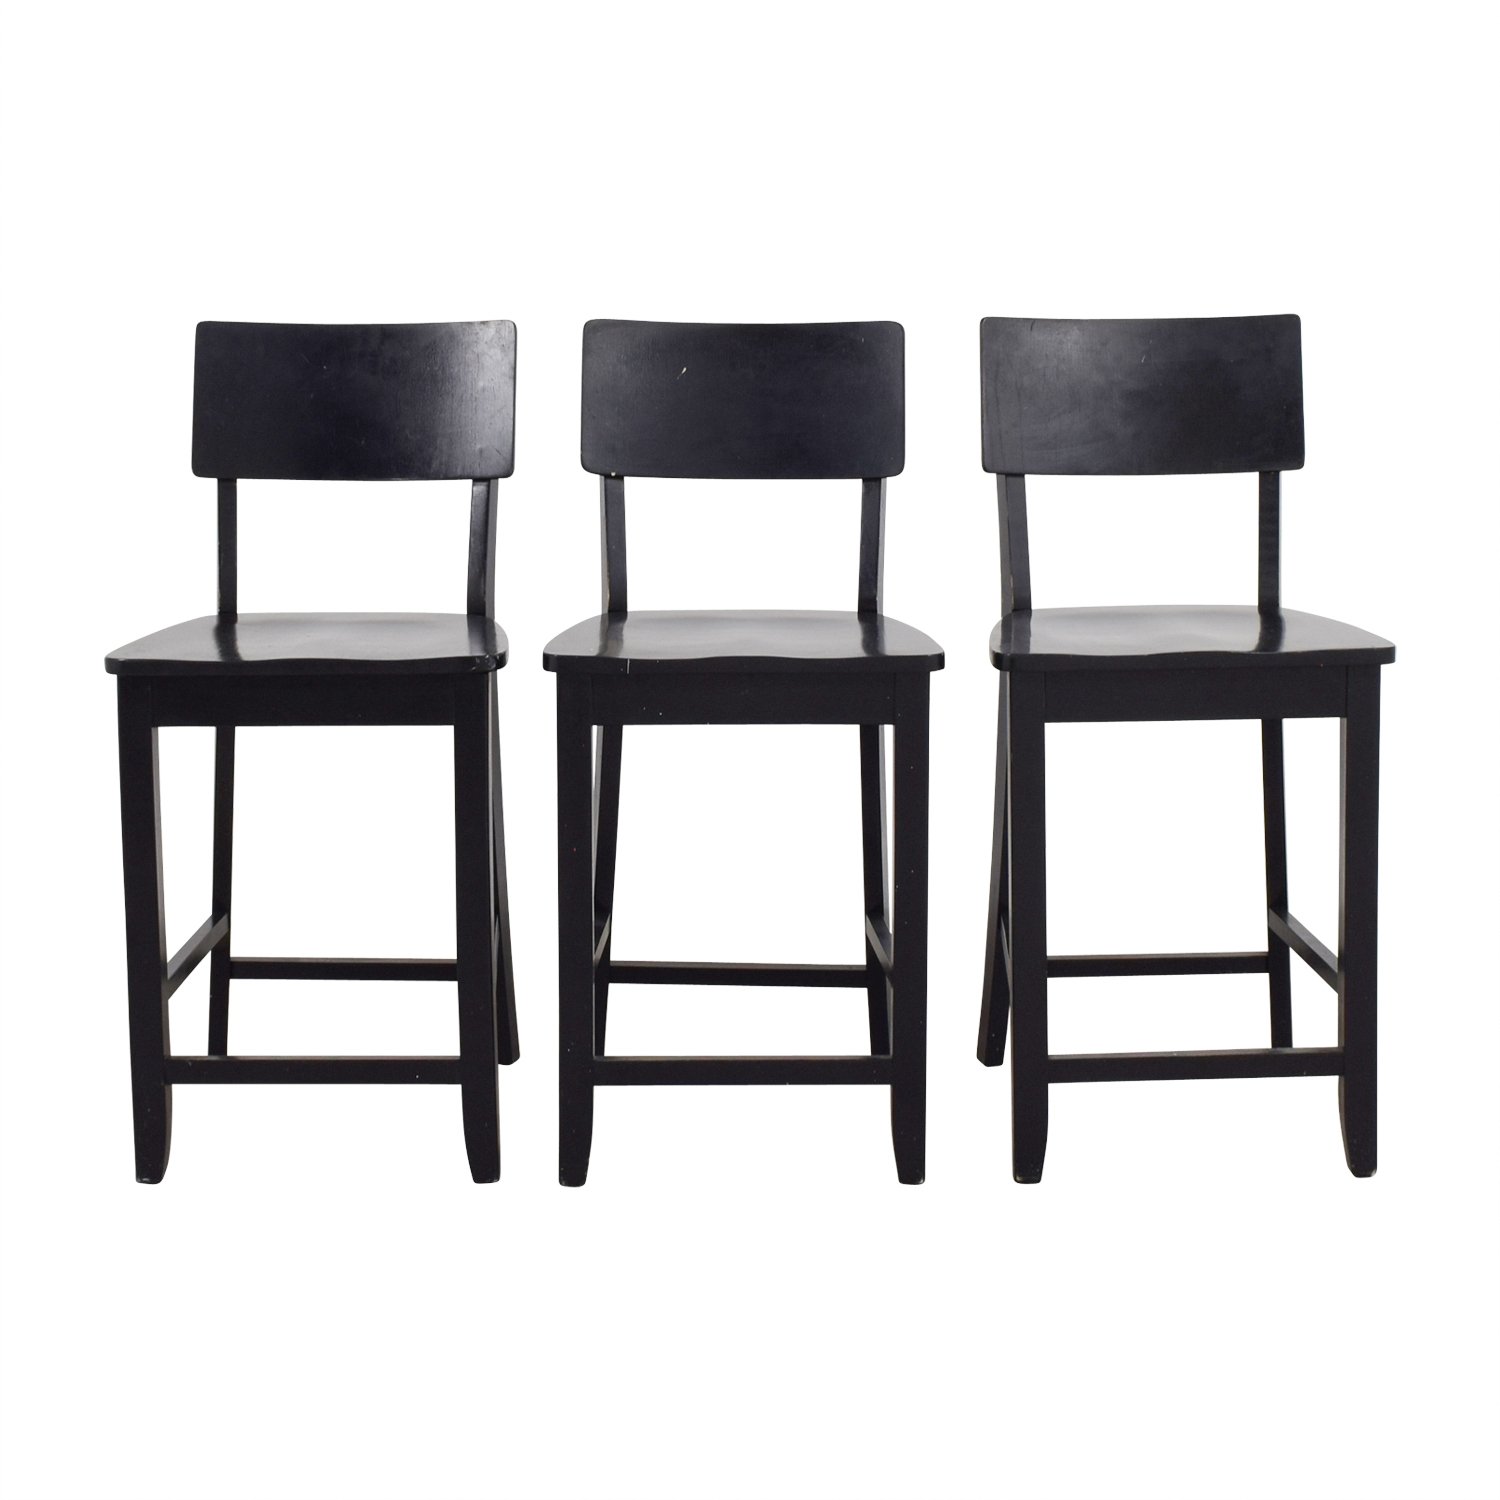 Surprising 74 Off Crate Barrel Crate Barrel Black Wood Bar Stools Chairs Pabps2019 Chair Design Images Pabps2019Com